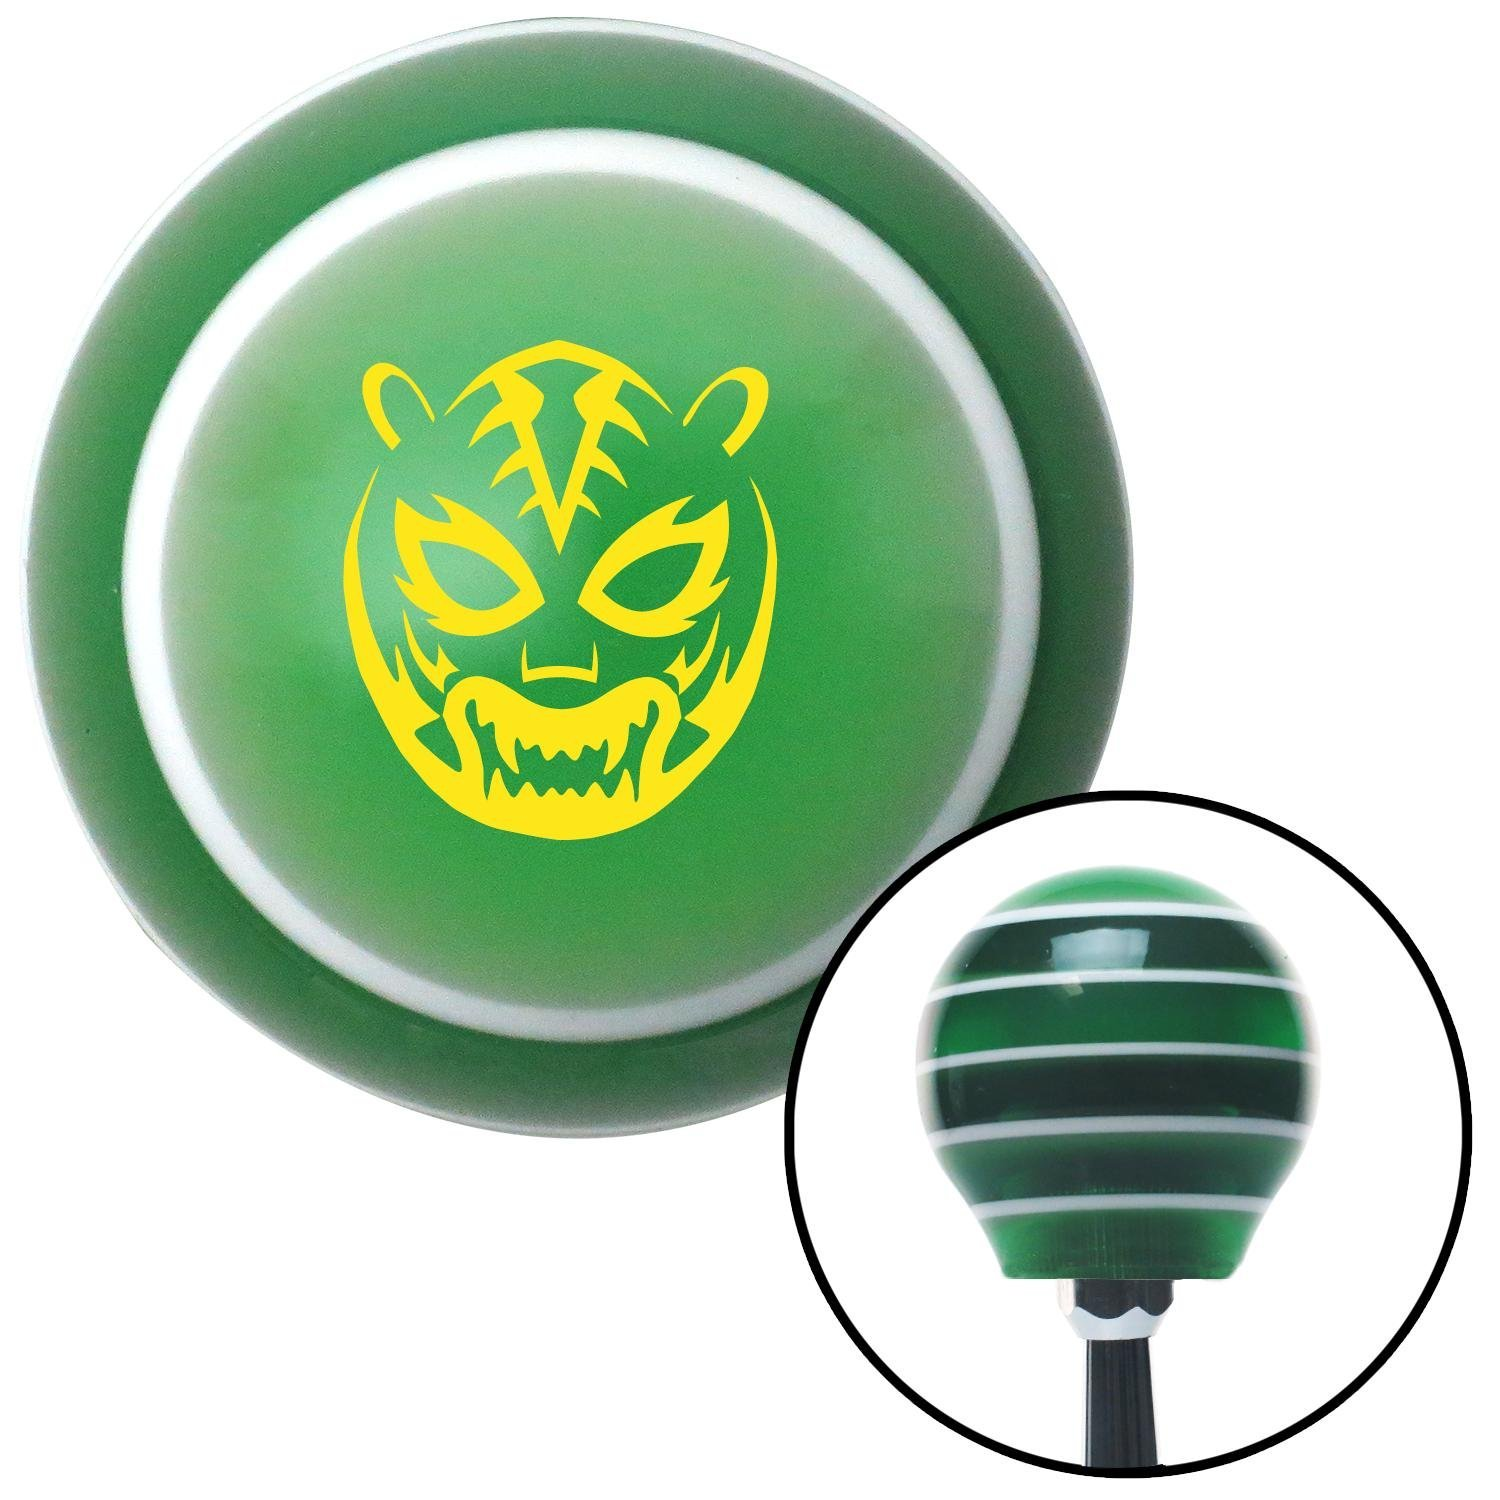 Yellow Lucha Libre Mask American Shifter 126075 Green Stripe Shift Knob with M16 x 1.5 Insert